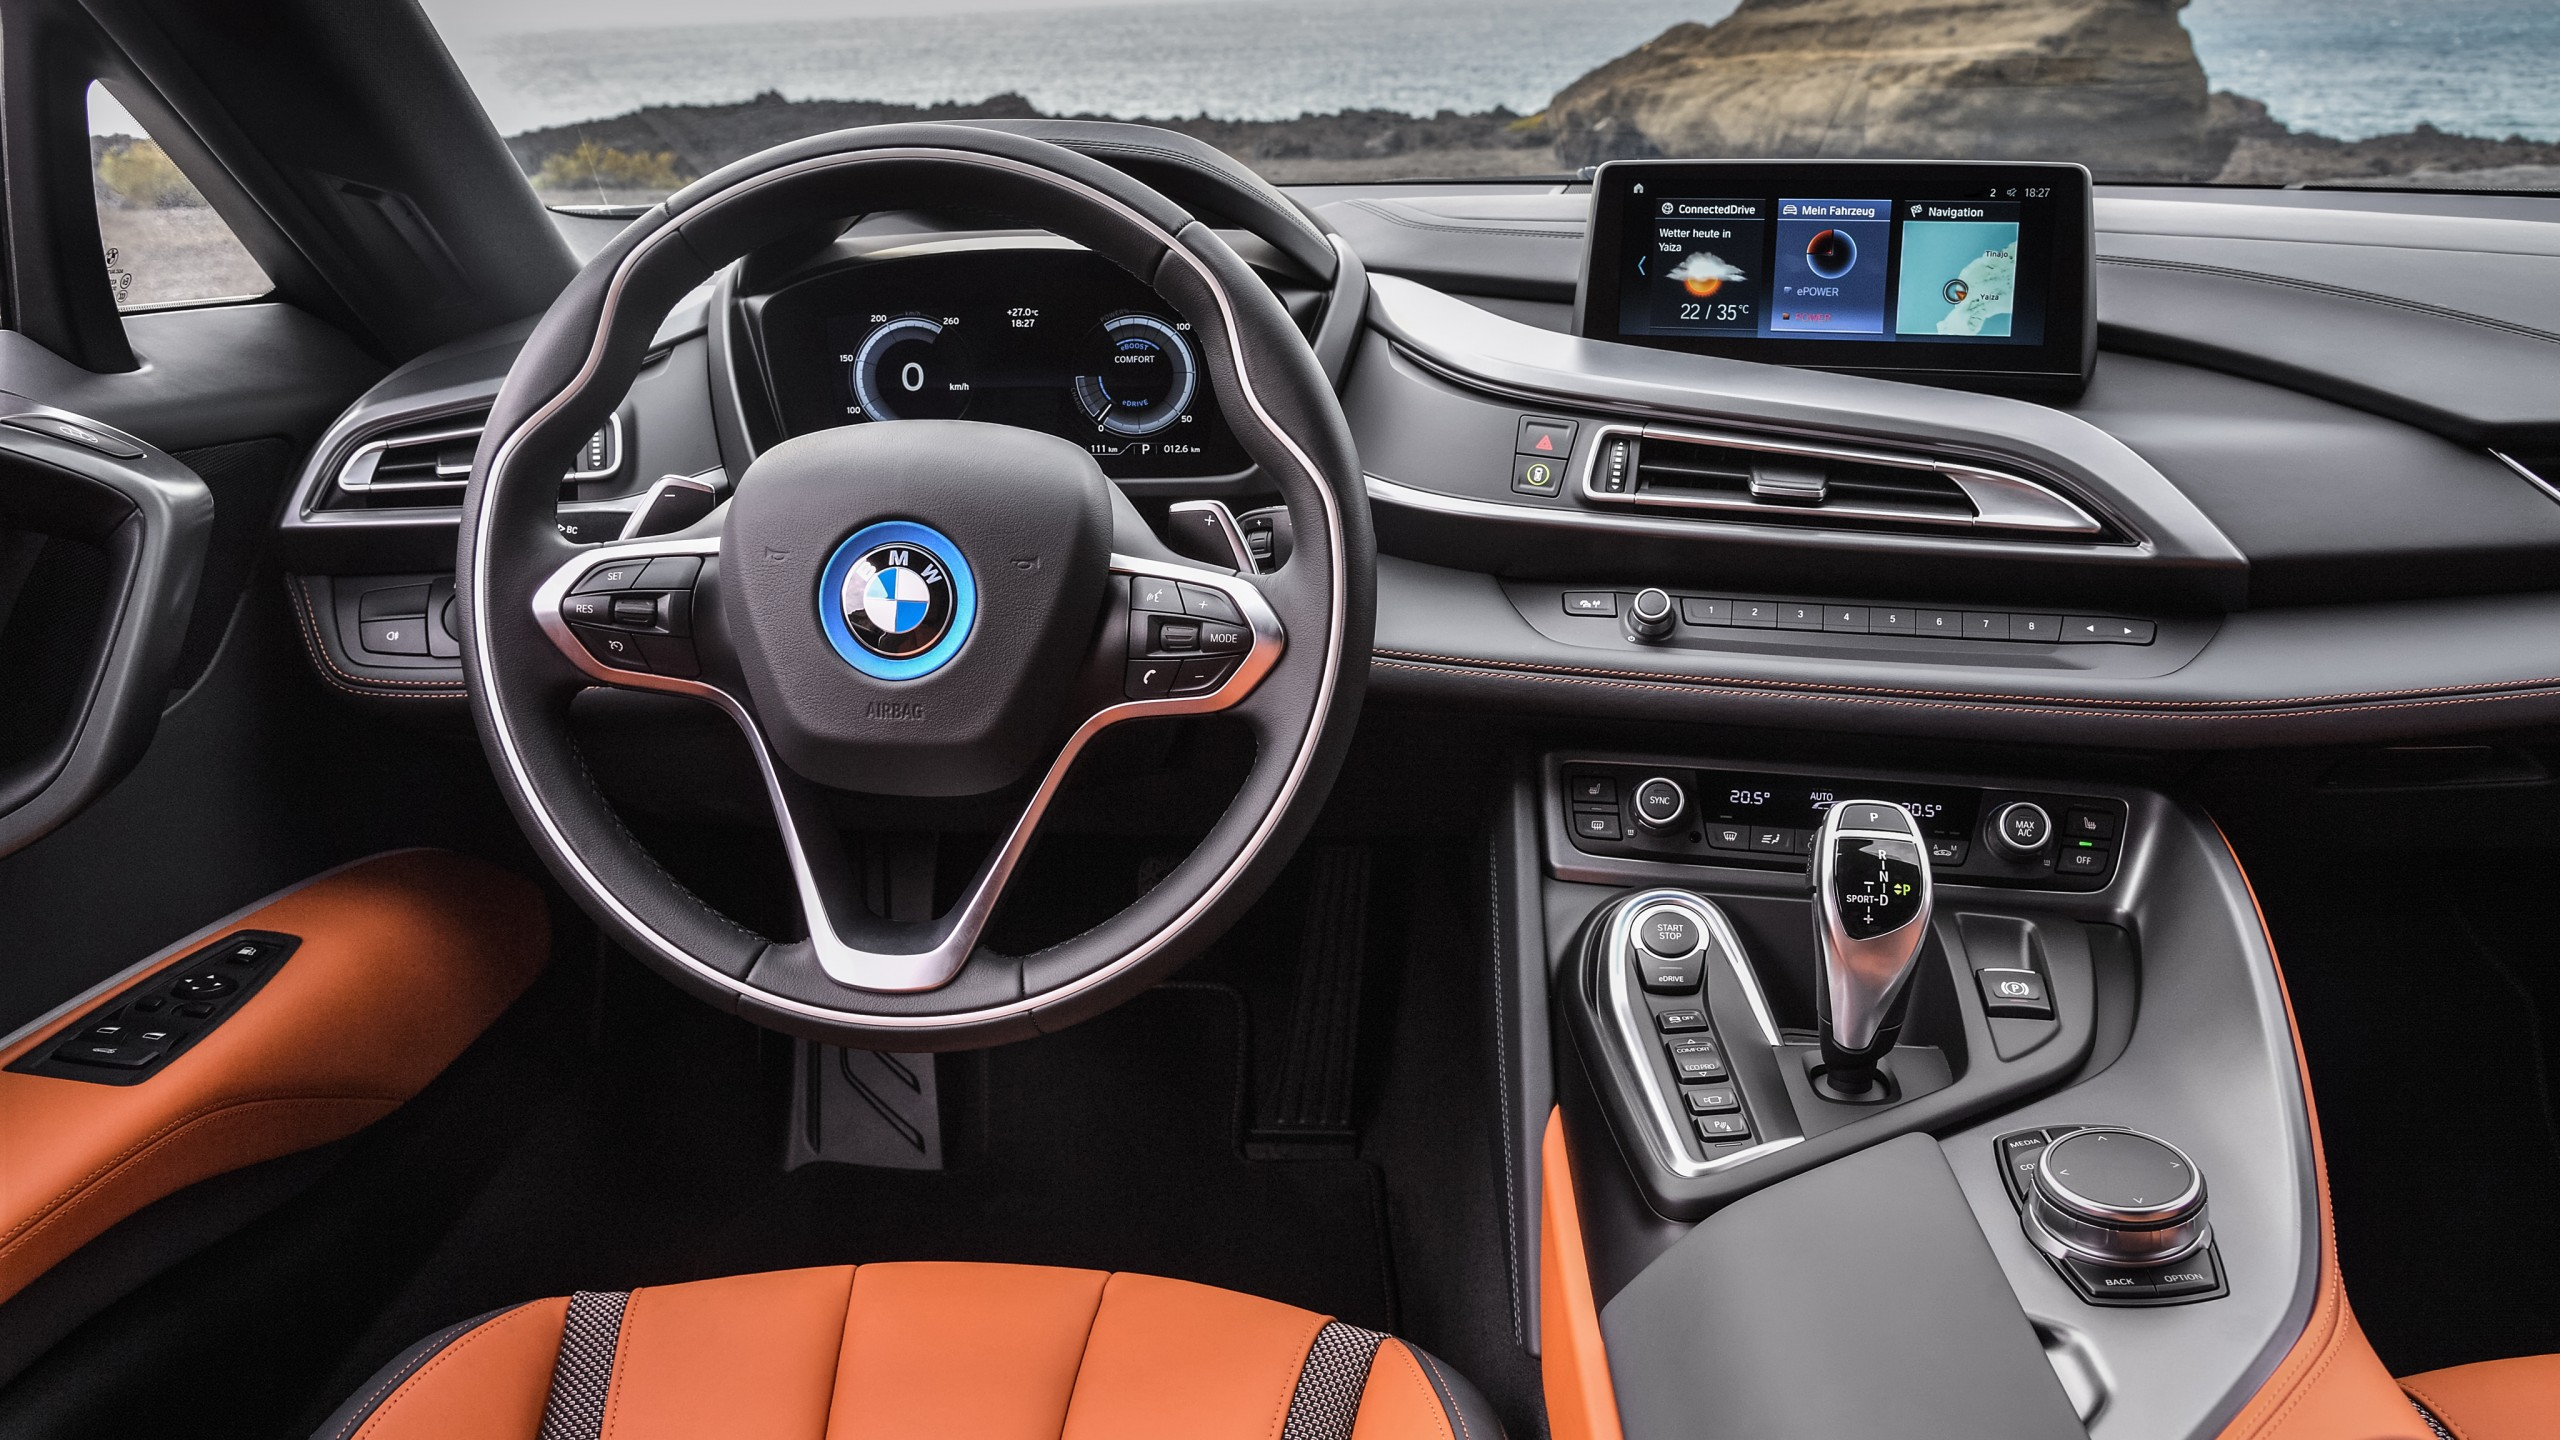 2018 Bmw I8 Roadster 4k Interior Wallpaper Hd Car